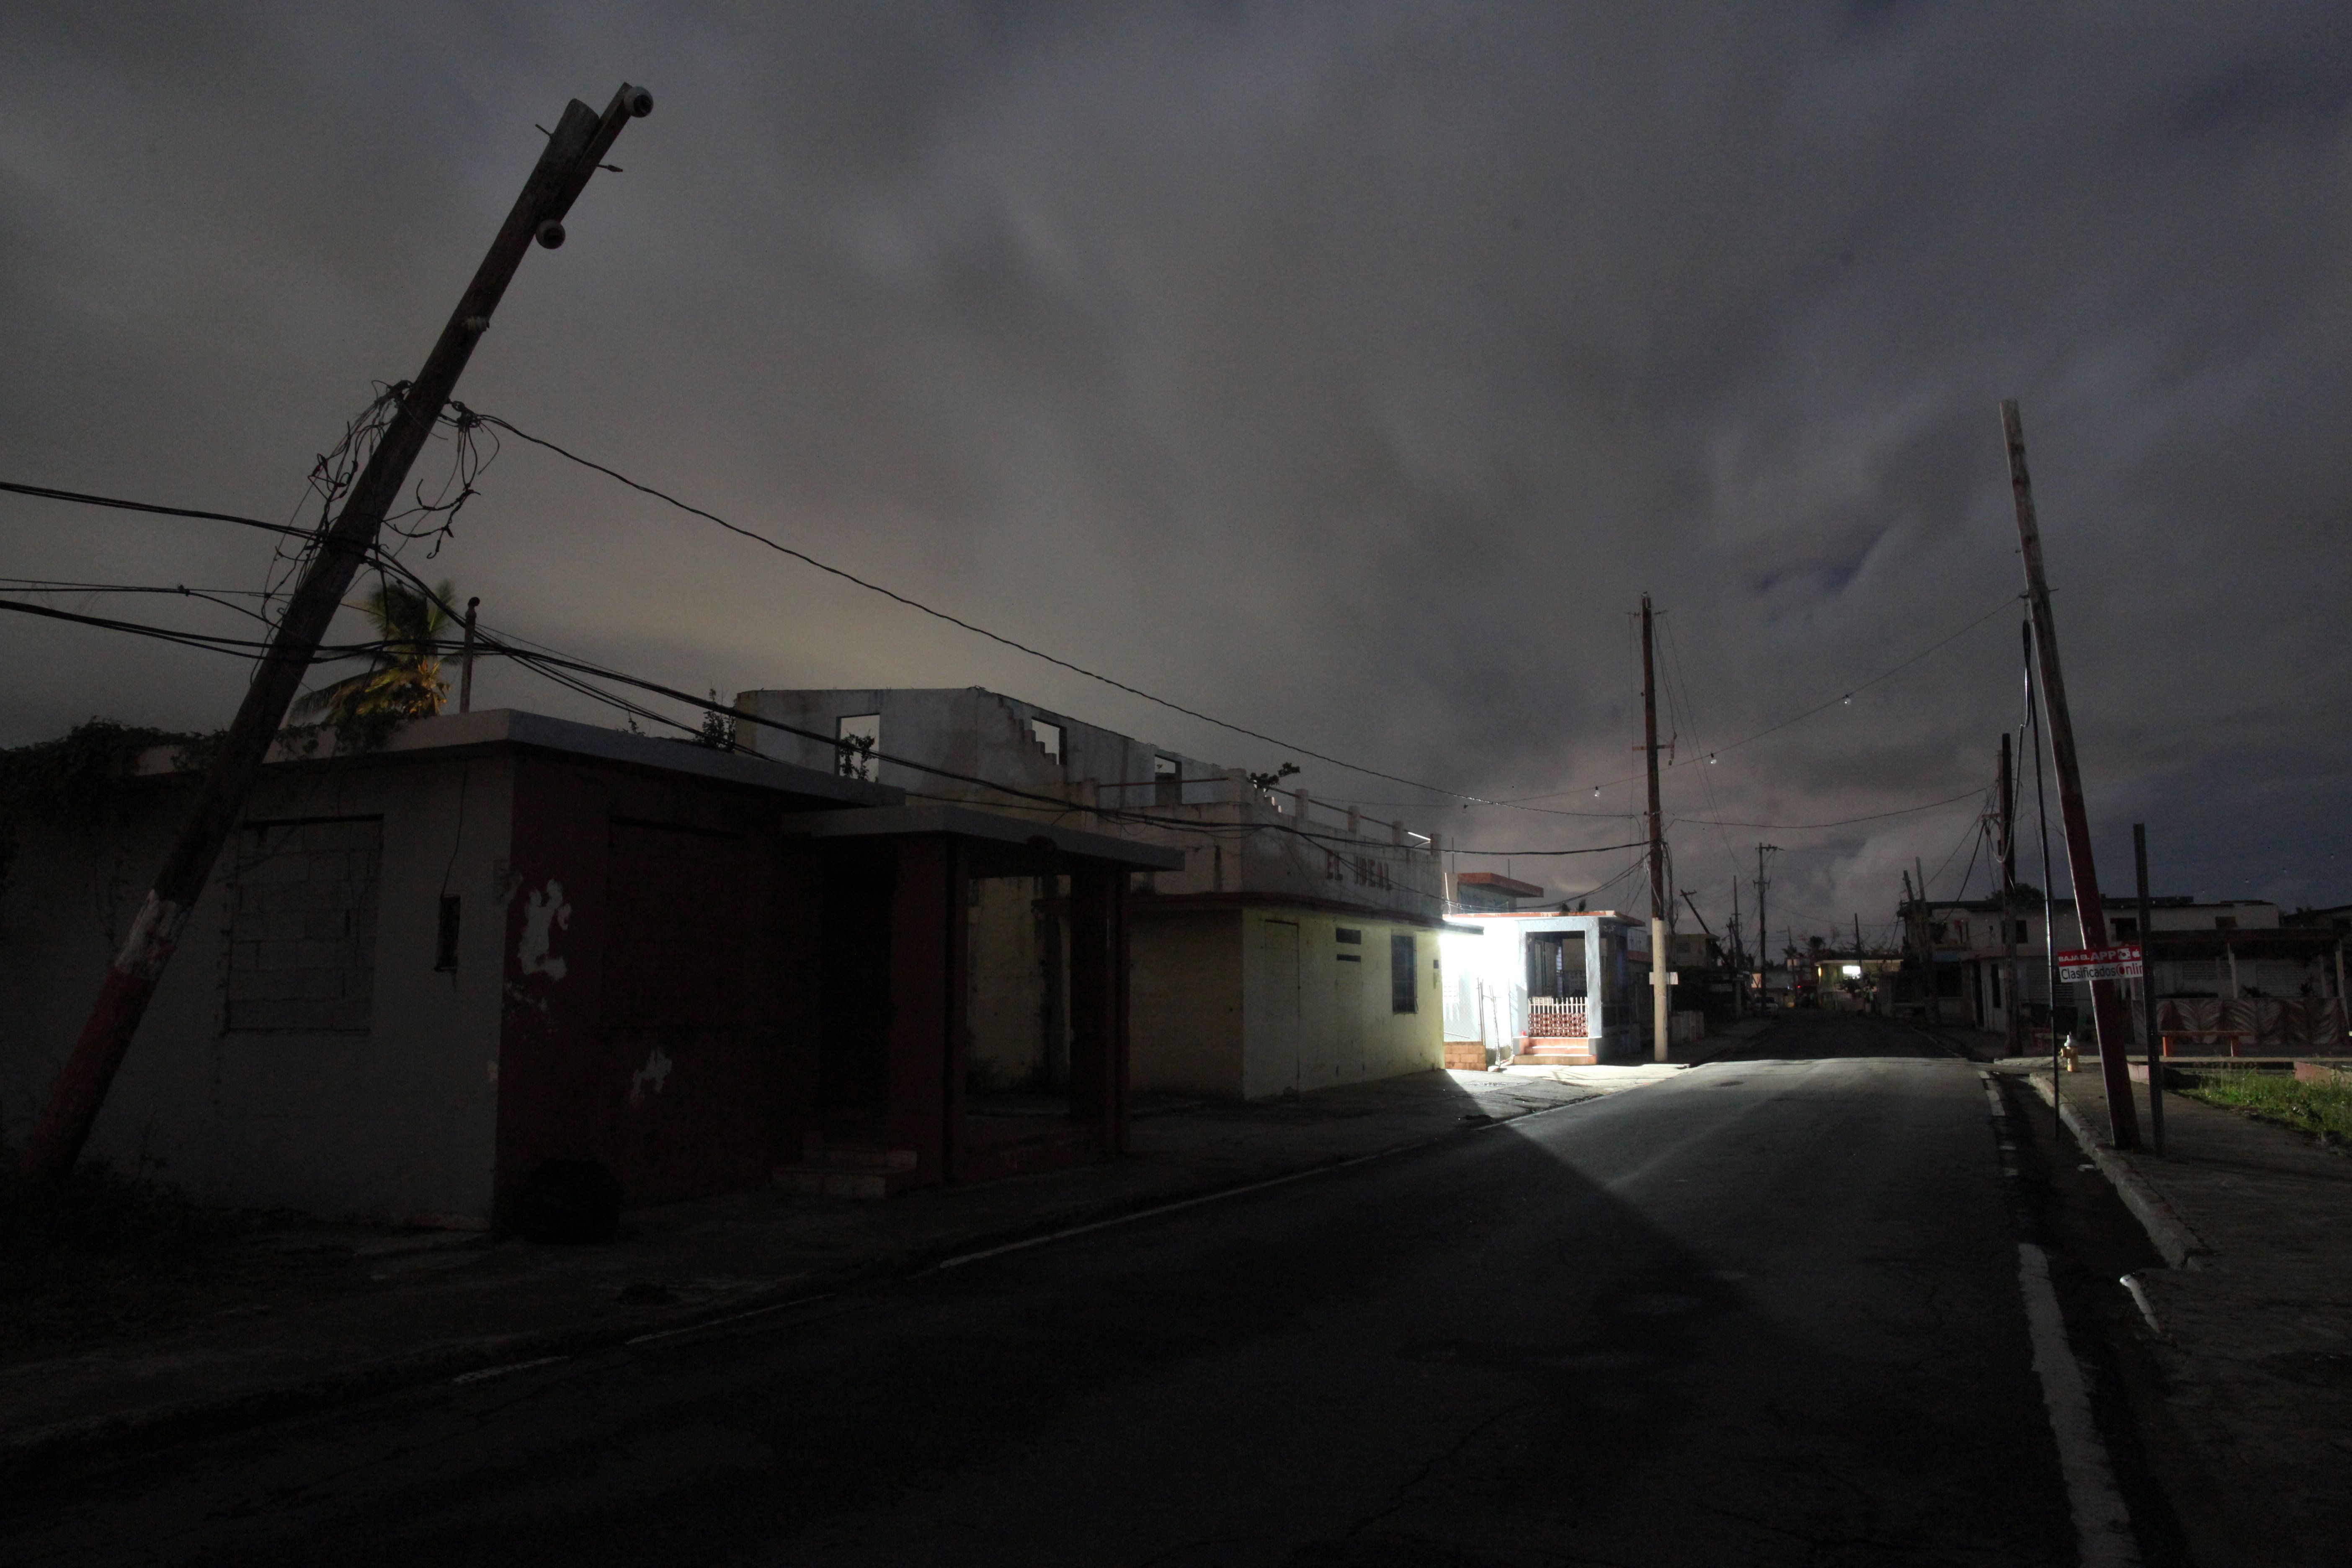 A house is lit with the help of a generator, on a street in the dark after Hurricane Maria damaged the electrical grid in September 2017, in Naguabo, Puerto Rico January 25, 2018. Picture taken January 25, 2018. REUTERS/Alvin Baez